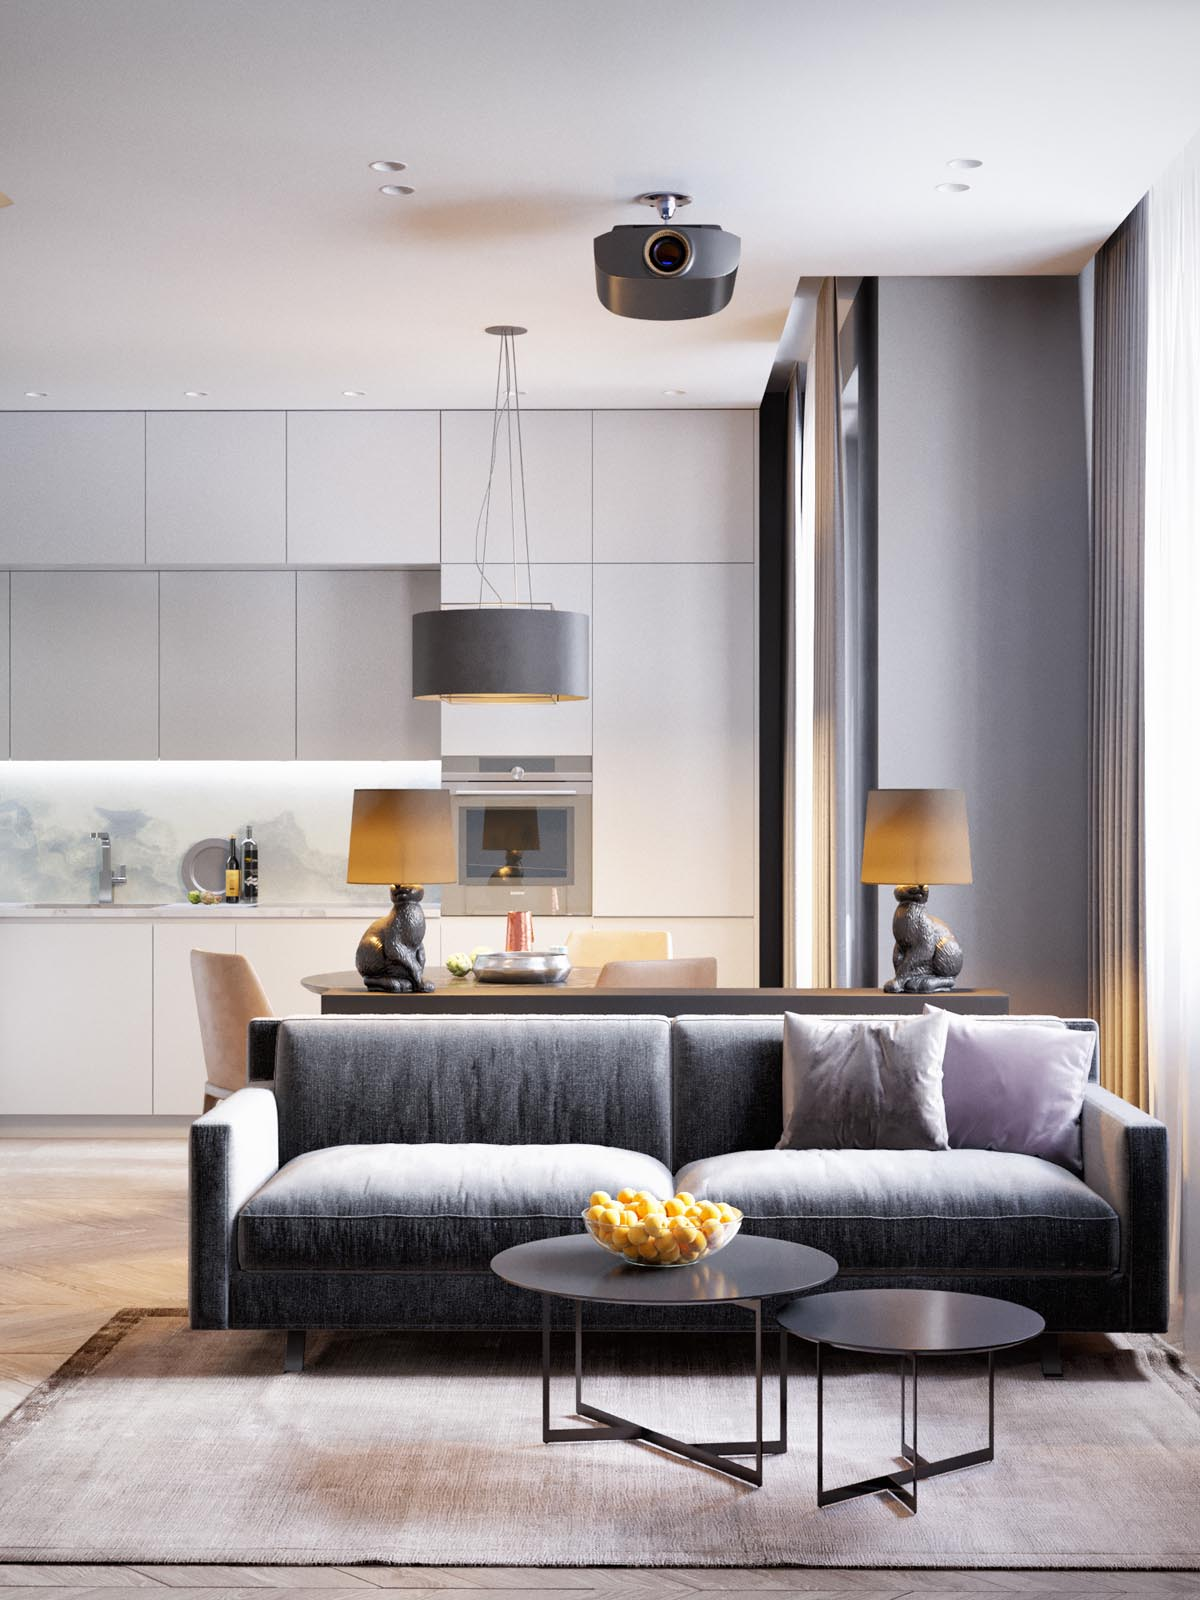 Home Design Under 60 Square Meters 3 Examples That Incorporate Luxury In Small Spaces